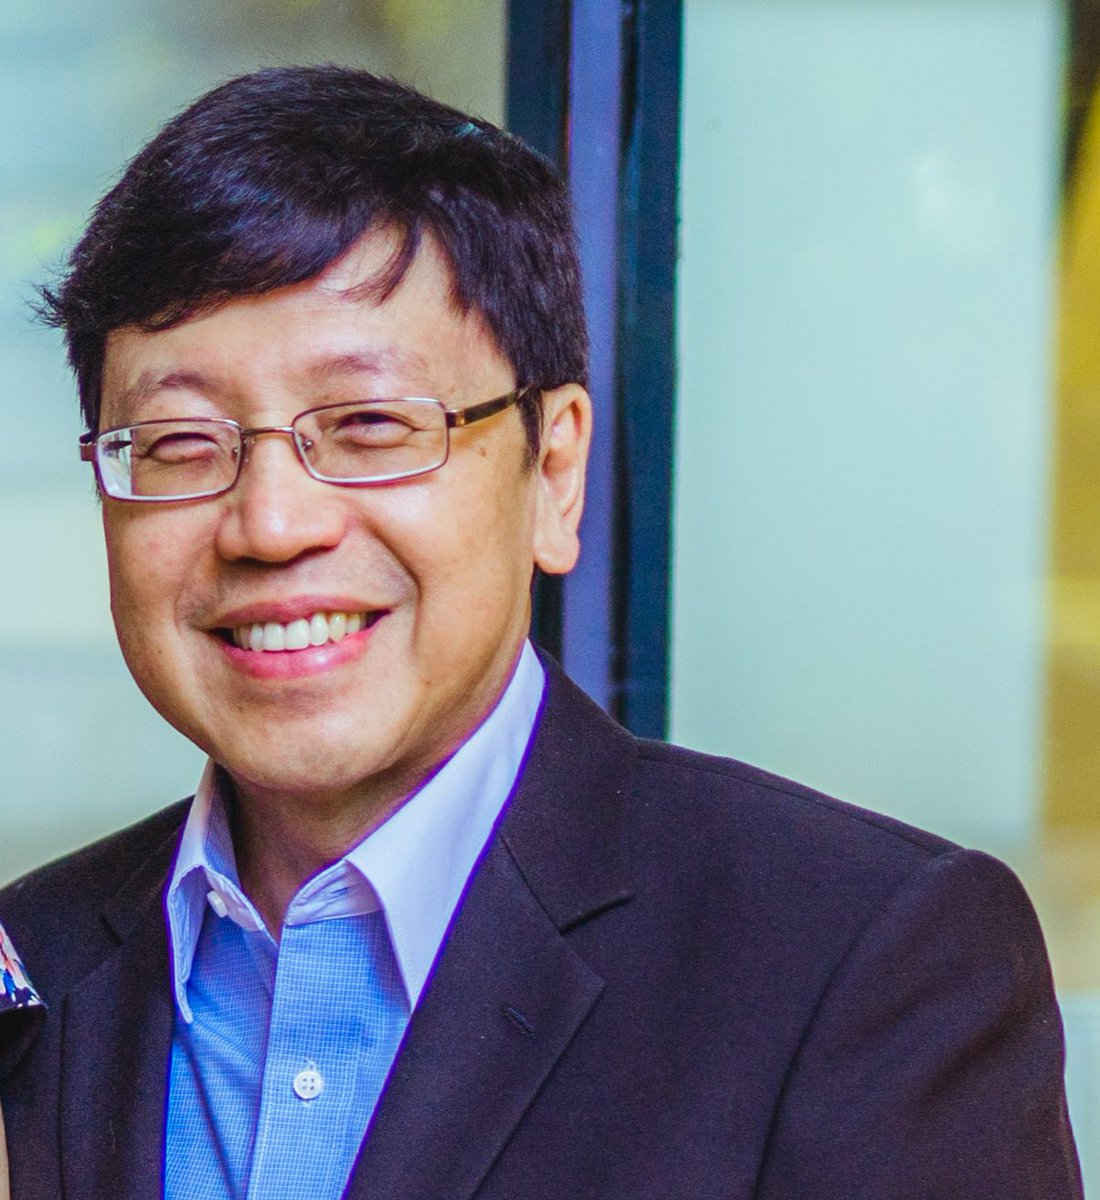 2/5 @UQ_News @UQ_EAIT Professor Chien Ming Wang is one of the foremost experts in Very Large Floating Structures (VLFS) and was interviewed last month by #Myriad2018 speaker Nathalie Mezza-Garcia for @BlueFrontiers  https:// youtu.be/-fsoIsyKLuE  &nbsp;   #urbantech #smartcity #bne #ClimateAction<br>http://pic.twitter.com/r2e3GGrz6w